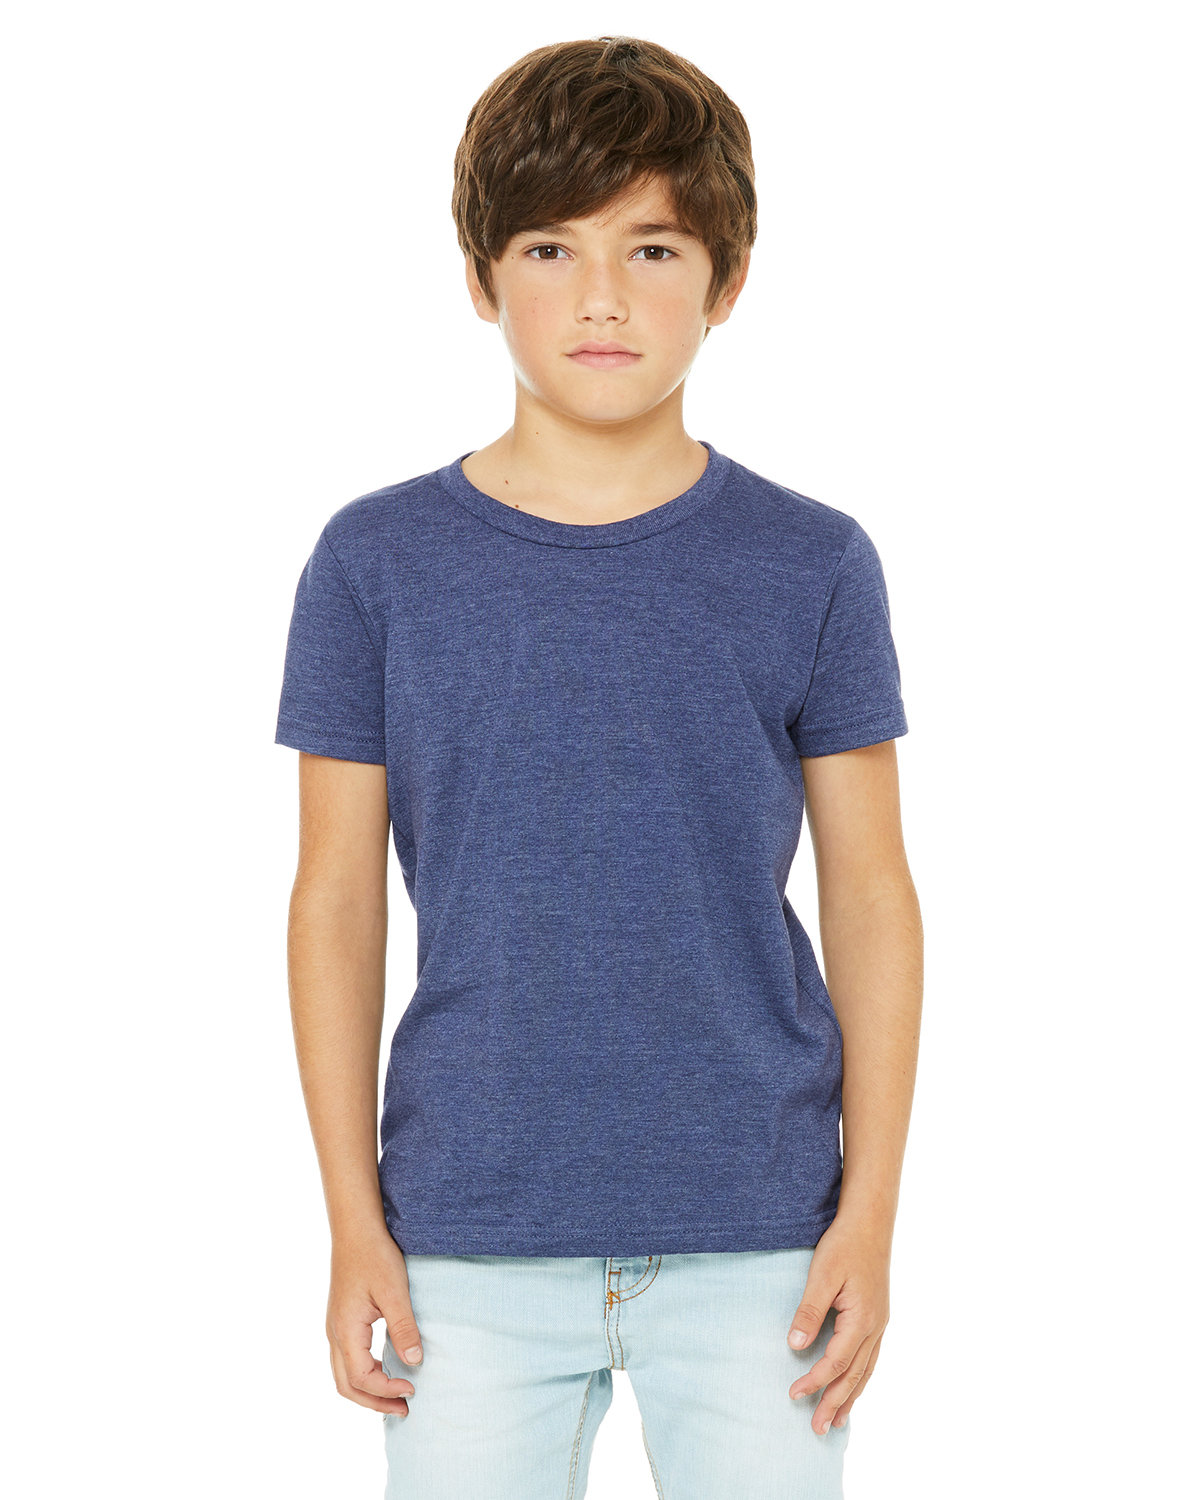 Bella + Canvas Youth Jersey T-Shirt HEATHER NAVY